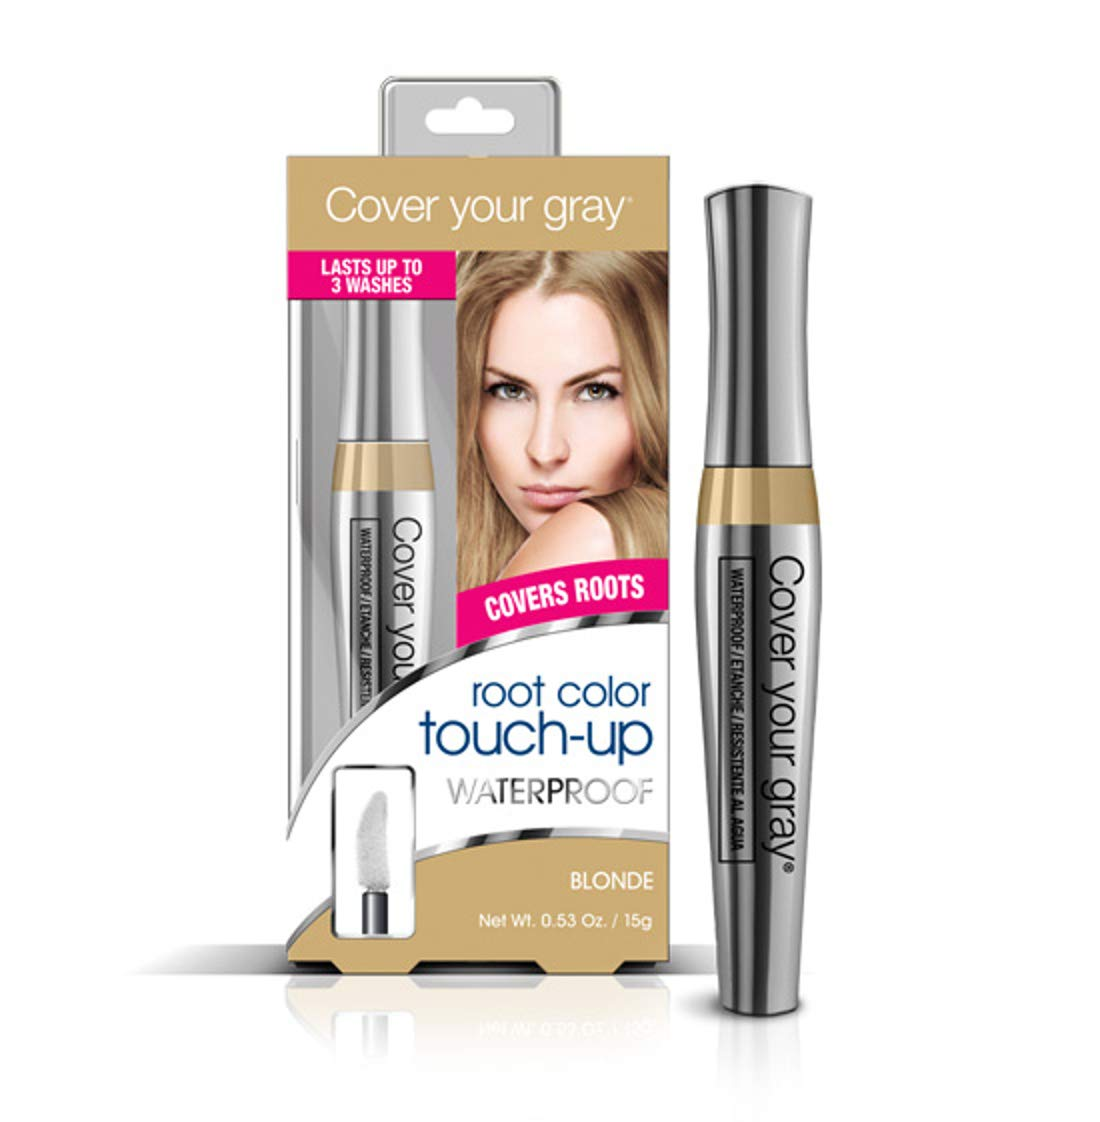 Cover Your Gray Waterproof Root Touch-Up Brown/Blonde Hair Color .53 oz. Daggett & Ramsdell